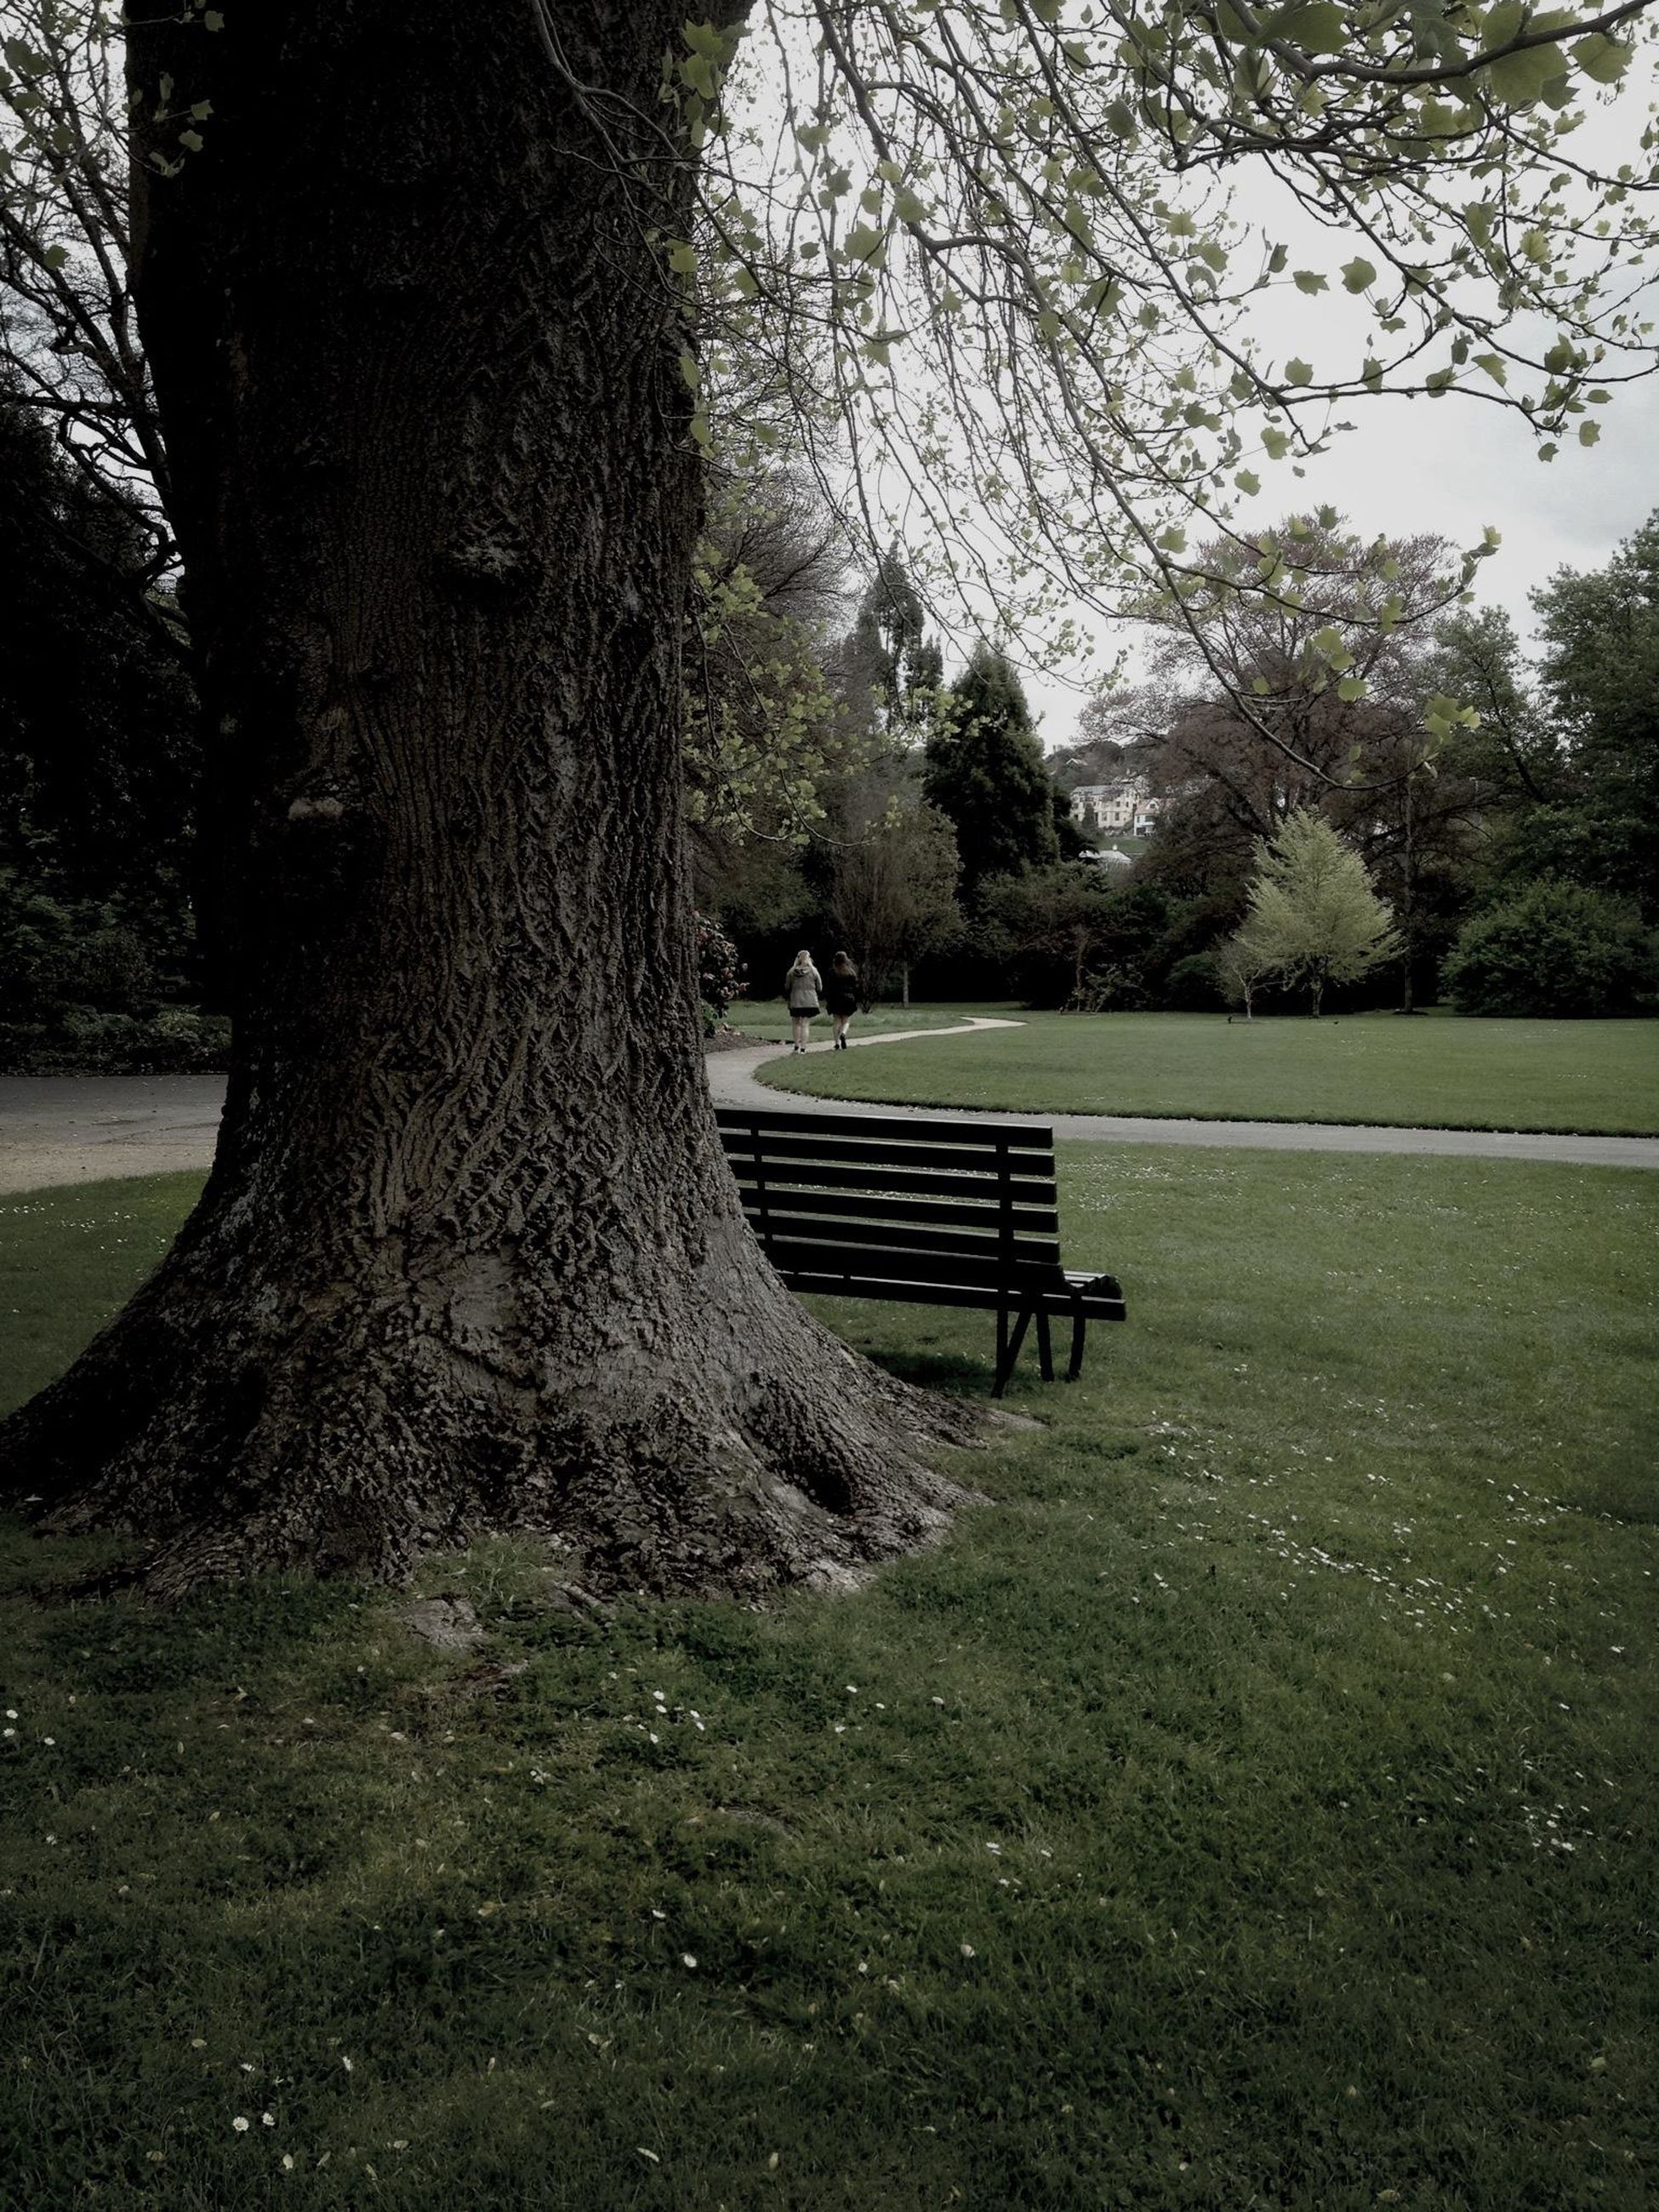 tree, tree trunk, grass, tranquility, bench, park - man made space, empty, absence, tranquil scene, park, nature, park bench, growth, shadow, landscape, scenics, branch, field, beauty in nature, day